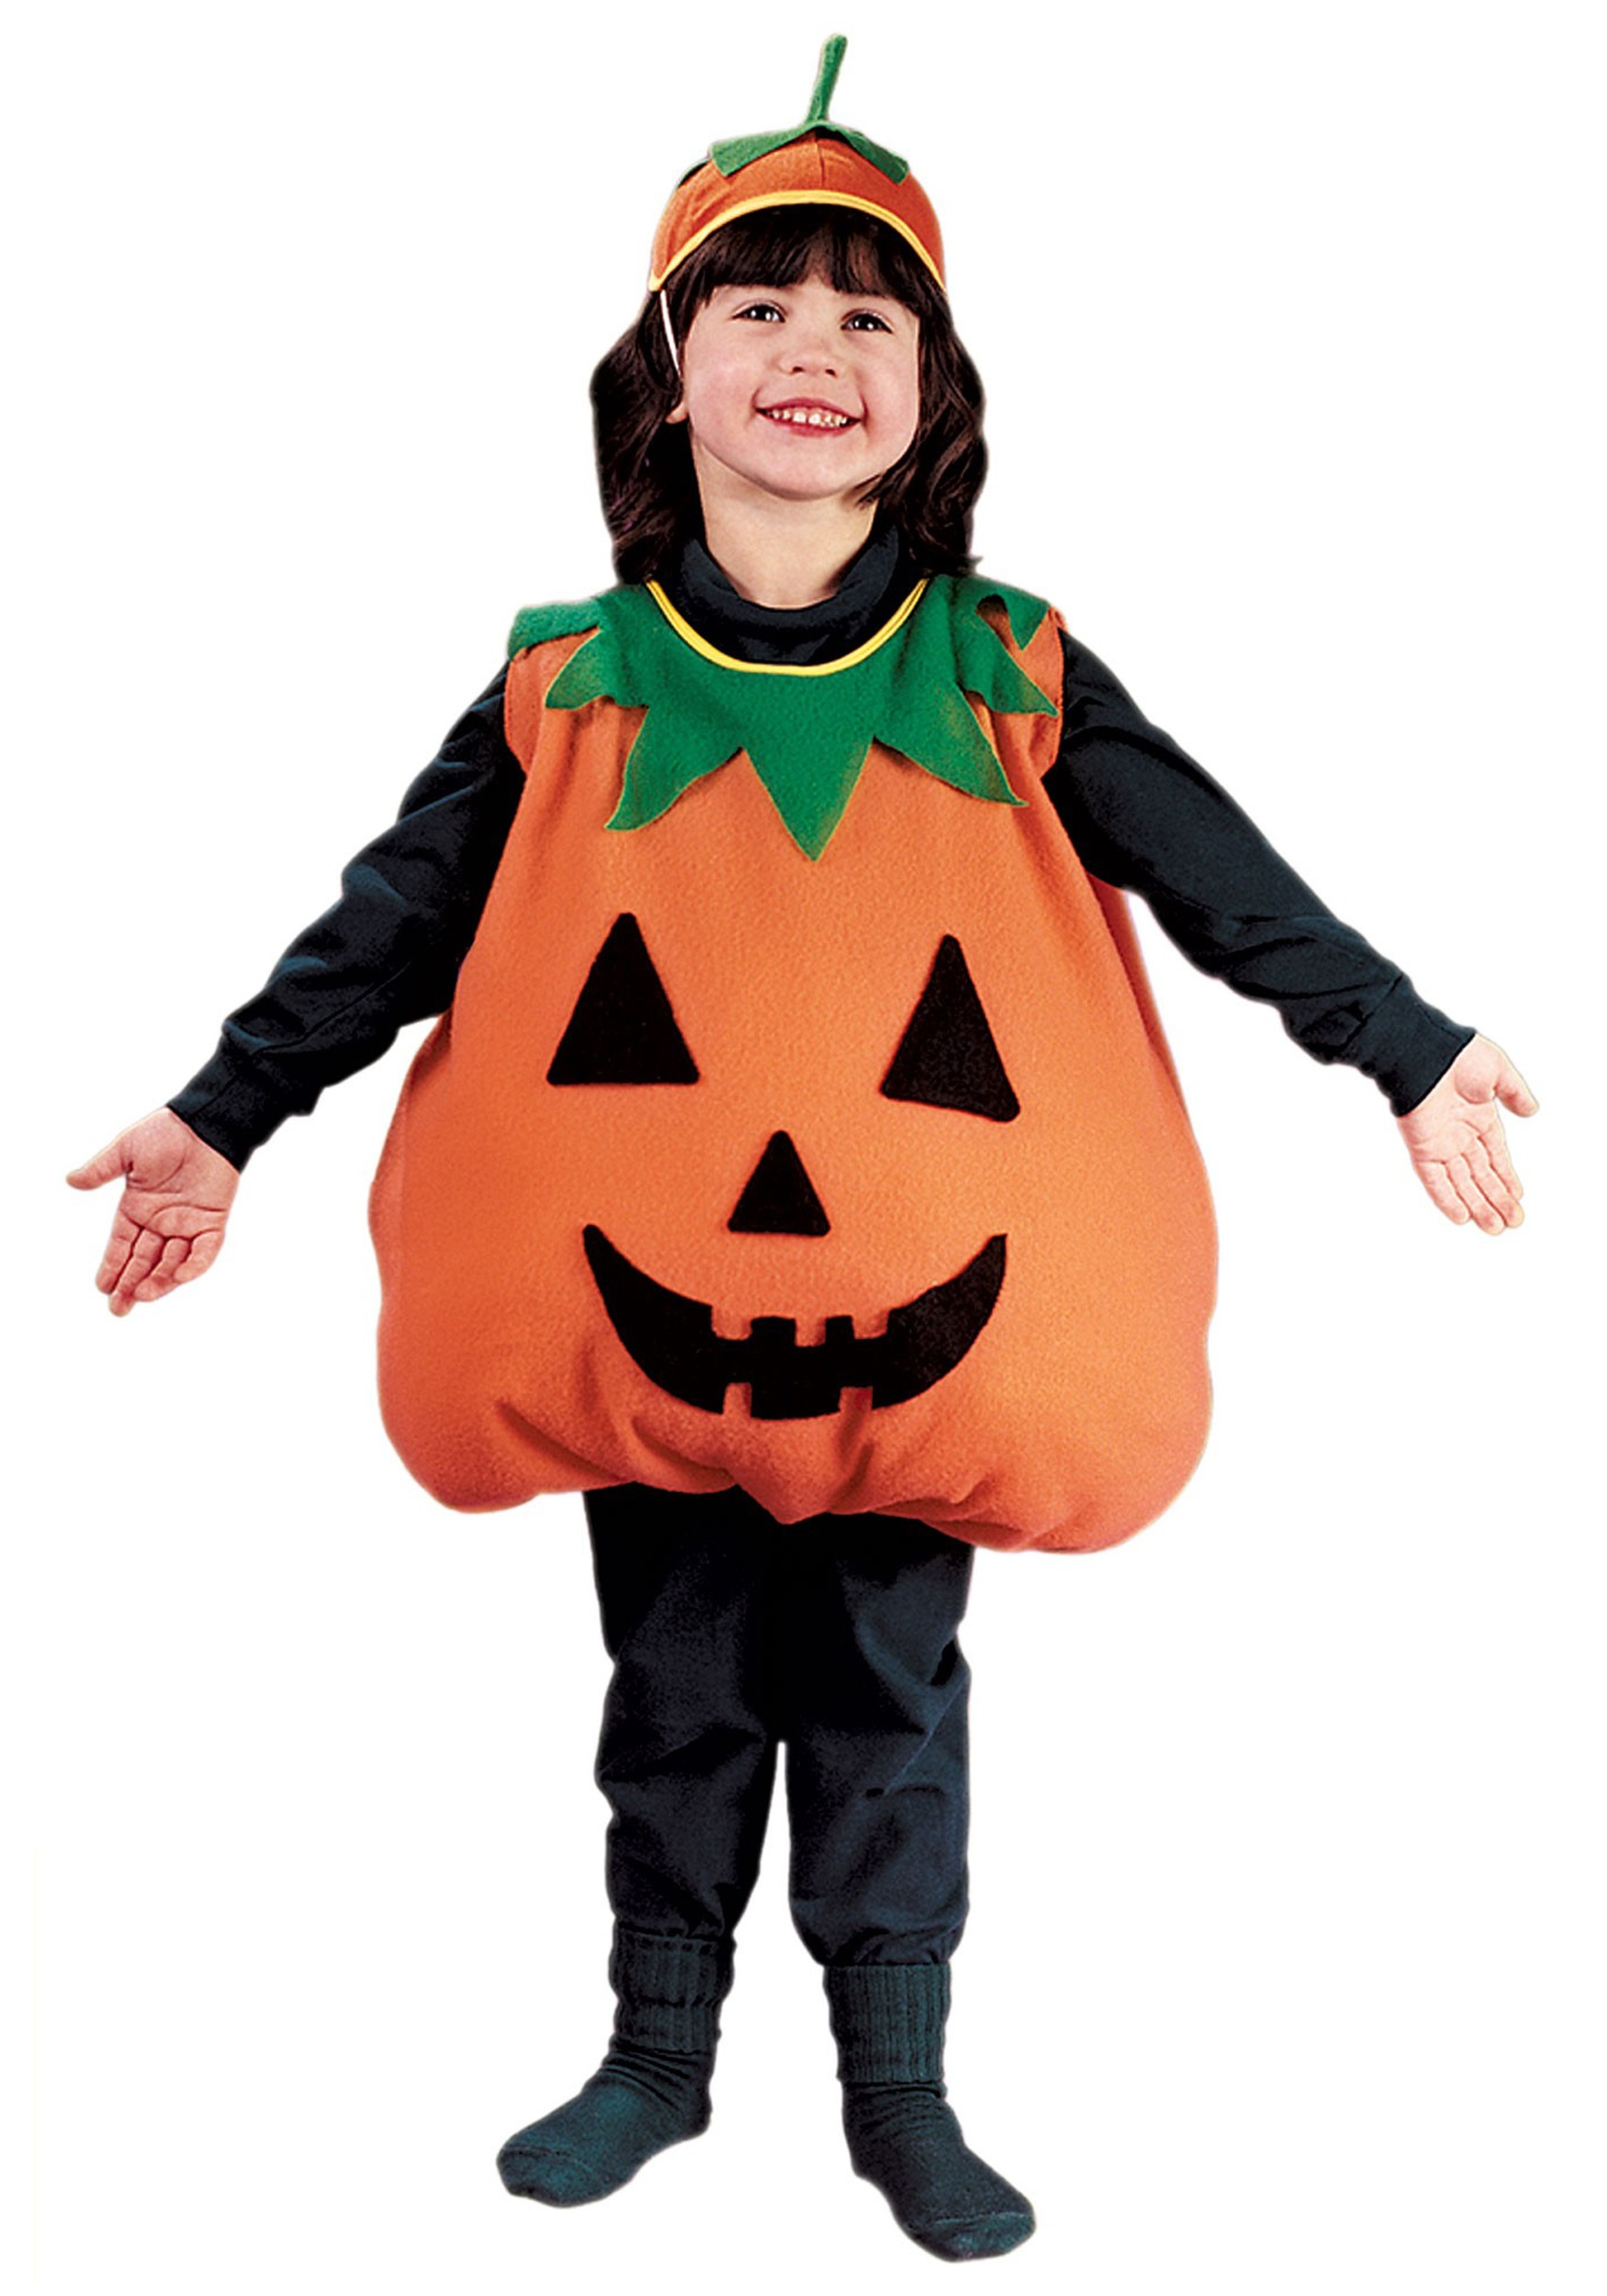 Child Pumpkin Costume  sc 1 st  Halloween Costumes : diy pumpkin costume for adults  - Germanpascual.Com